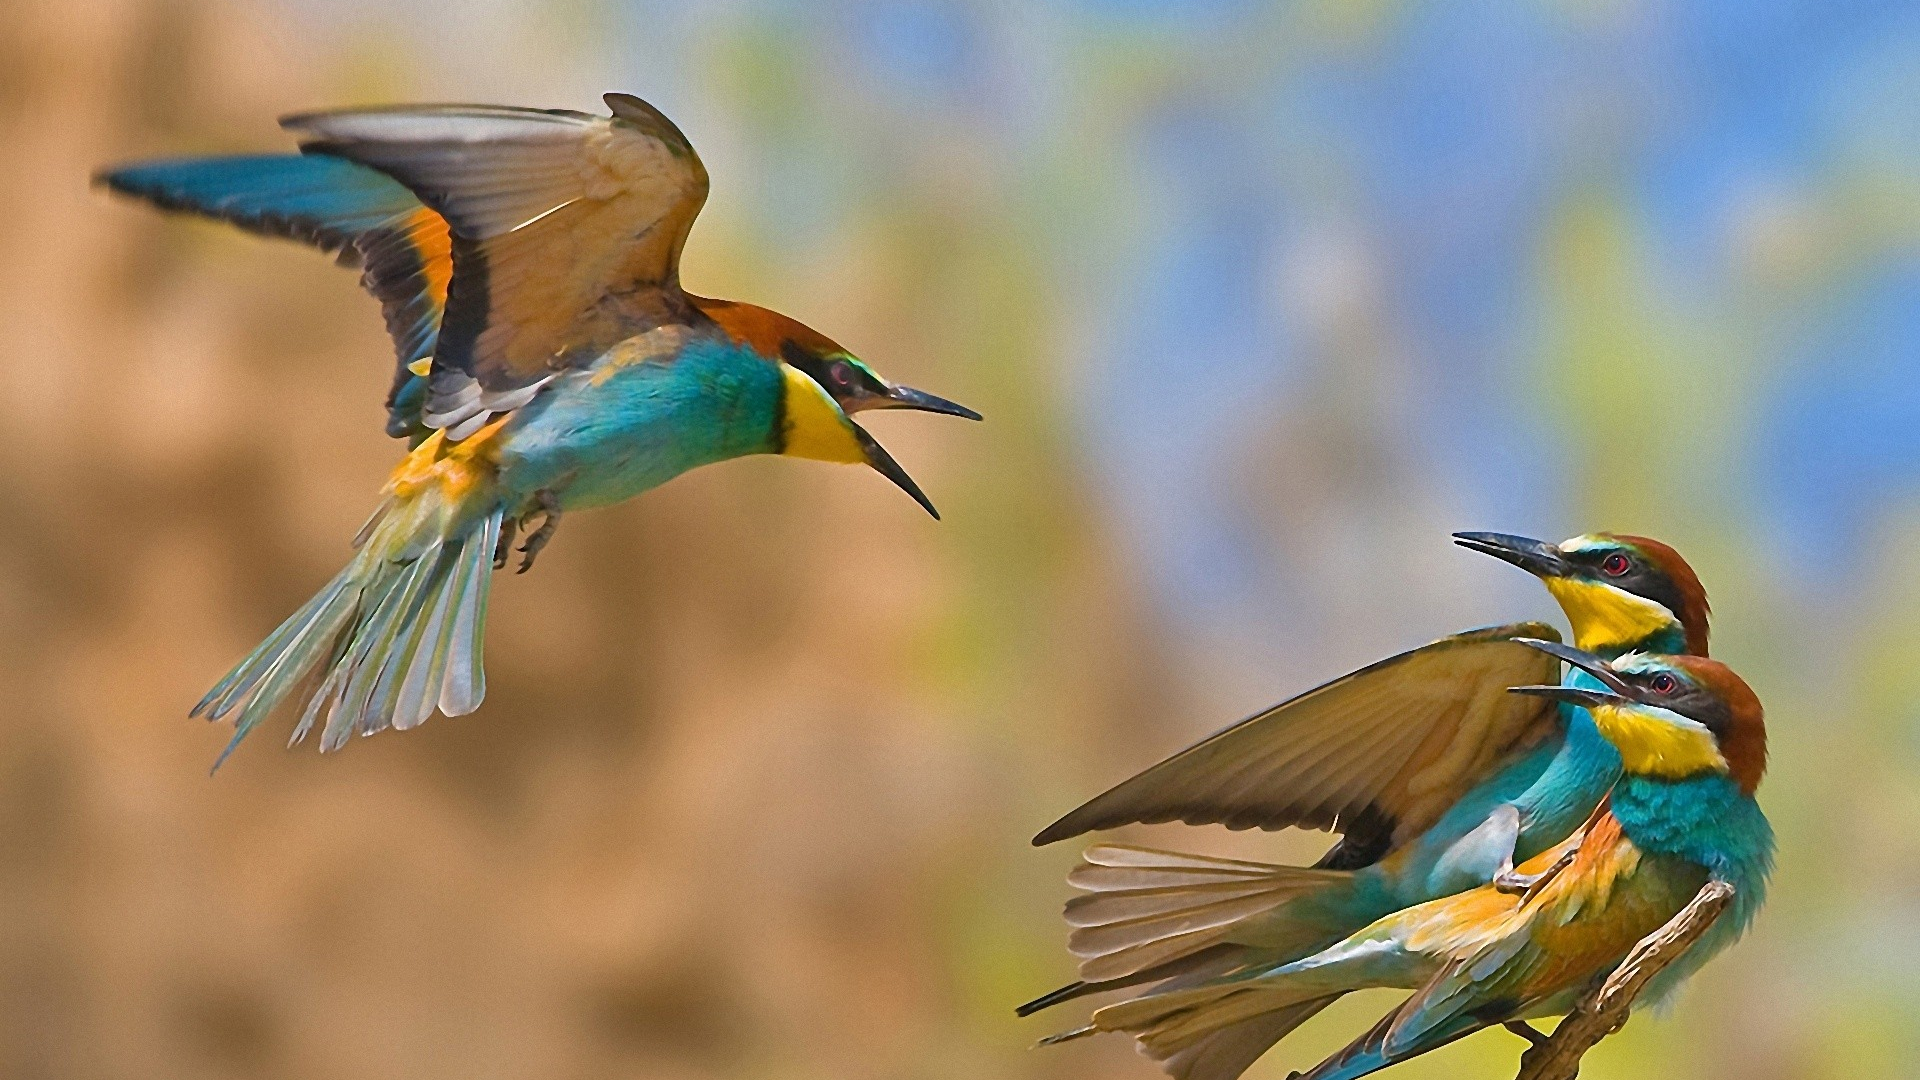 Free Download Birds Wallpaper Download For Mobile Birds Download For 1920x1200 For Your Desktop Mobile Tablet Explore 48 Birds Wallpaper Free Download Parrot Wallpapers Free Download Free Bird Wallpaper